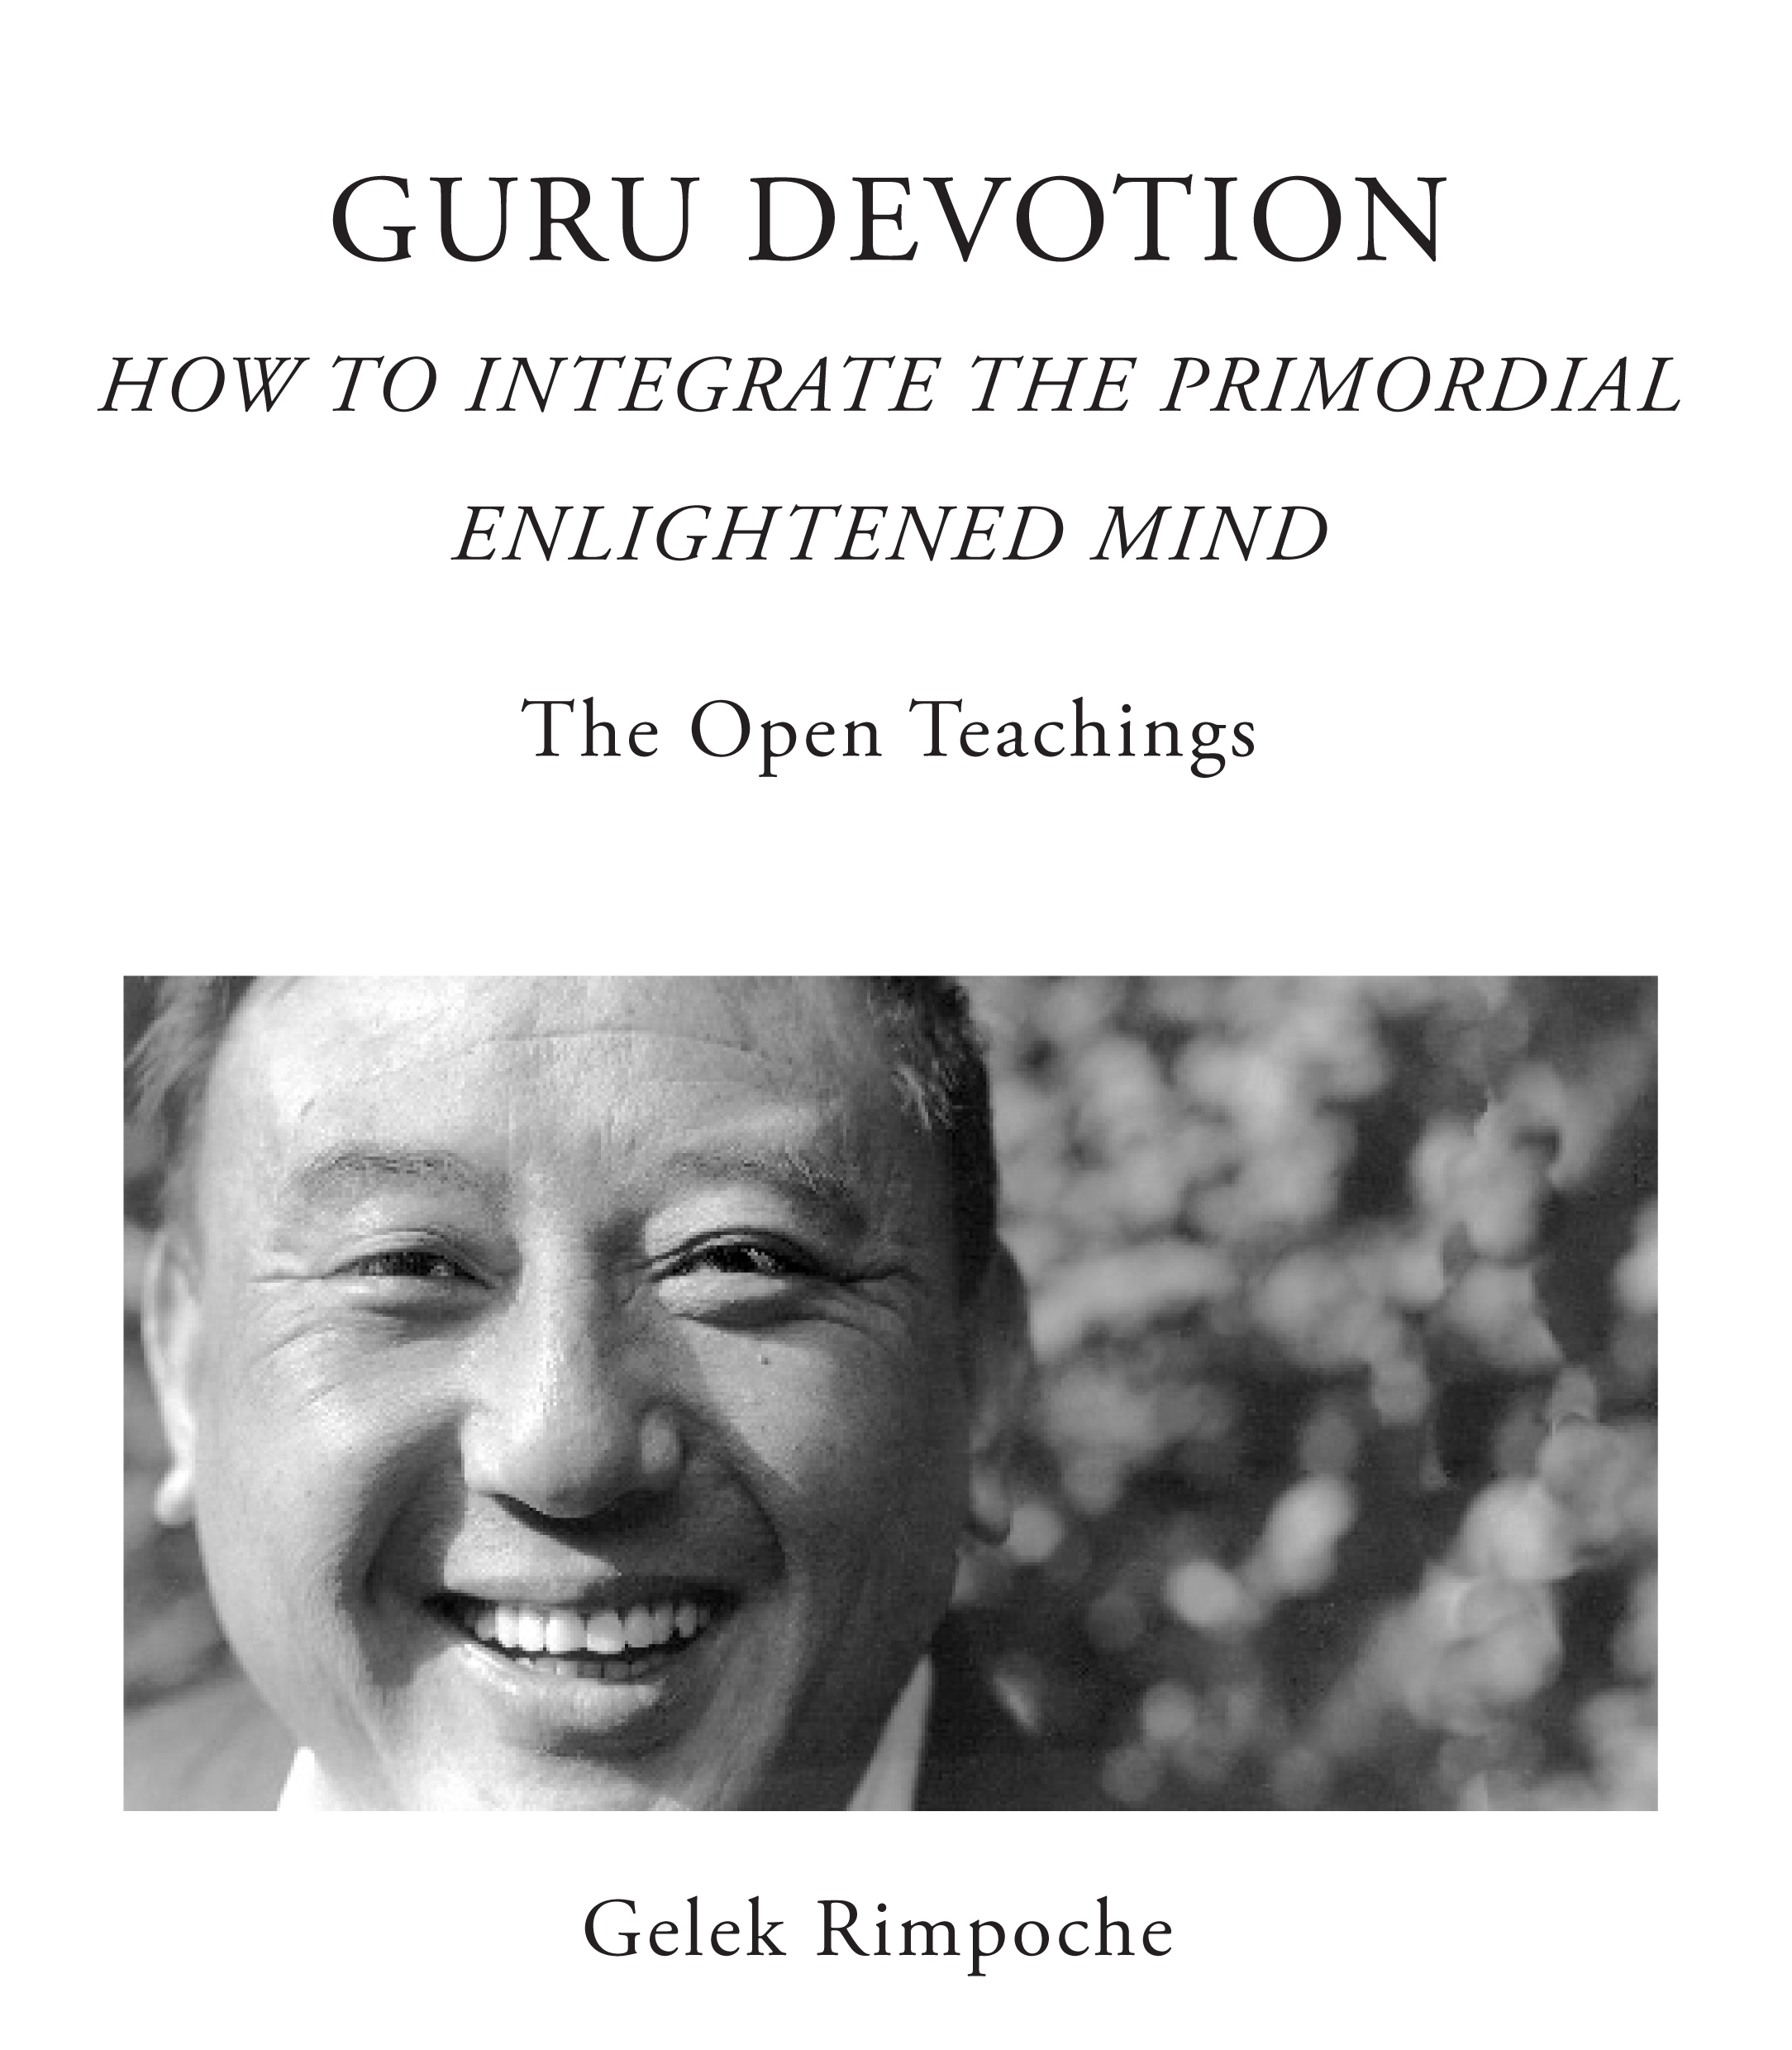 Guru Devotion – The Open Teachings